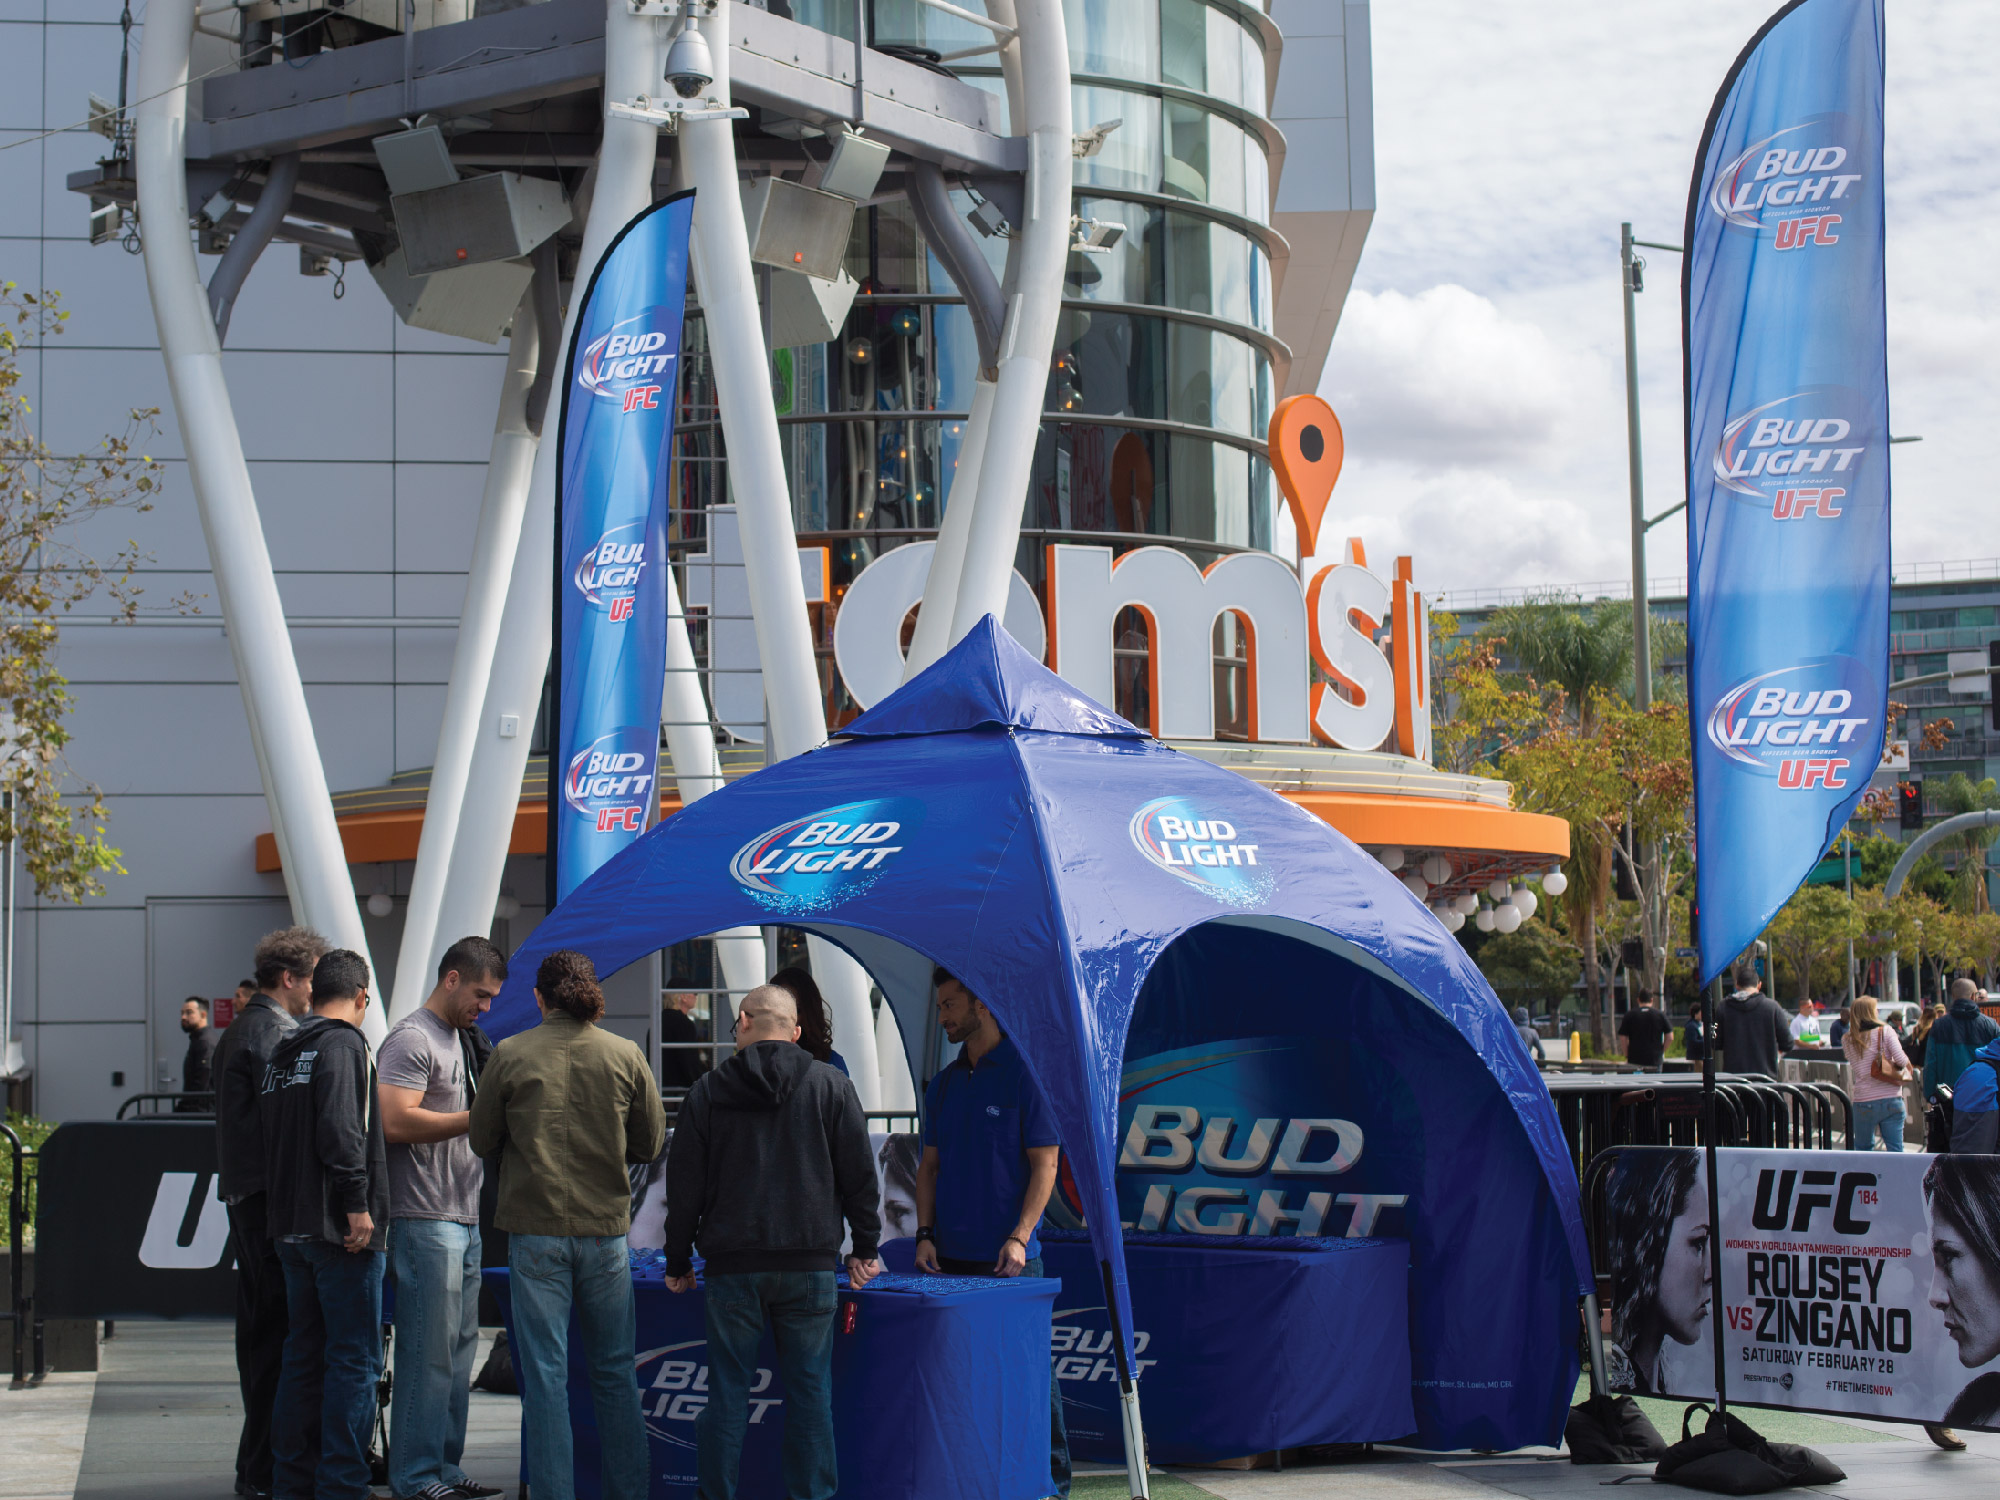 Bud Light custom printed advertising flags and dome tent at the Staples Center for a UFC event